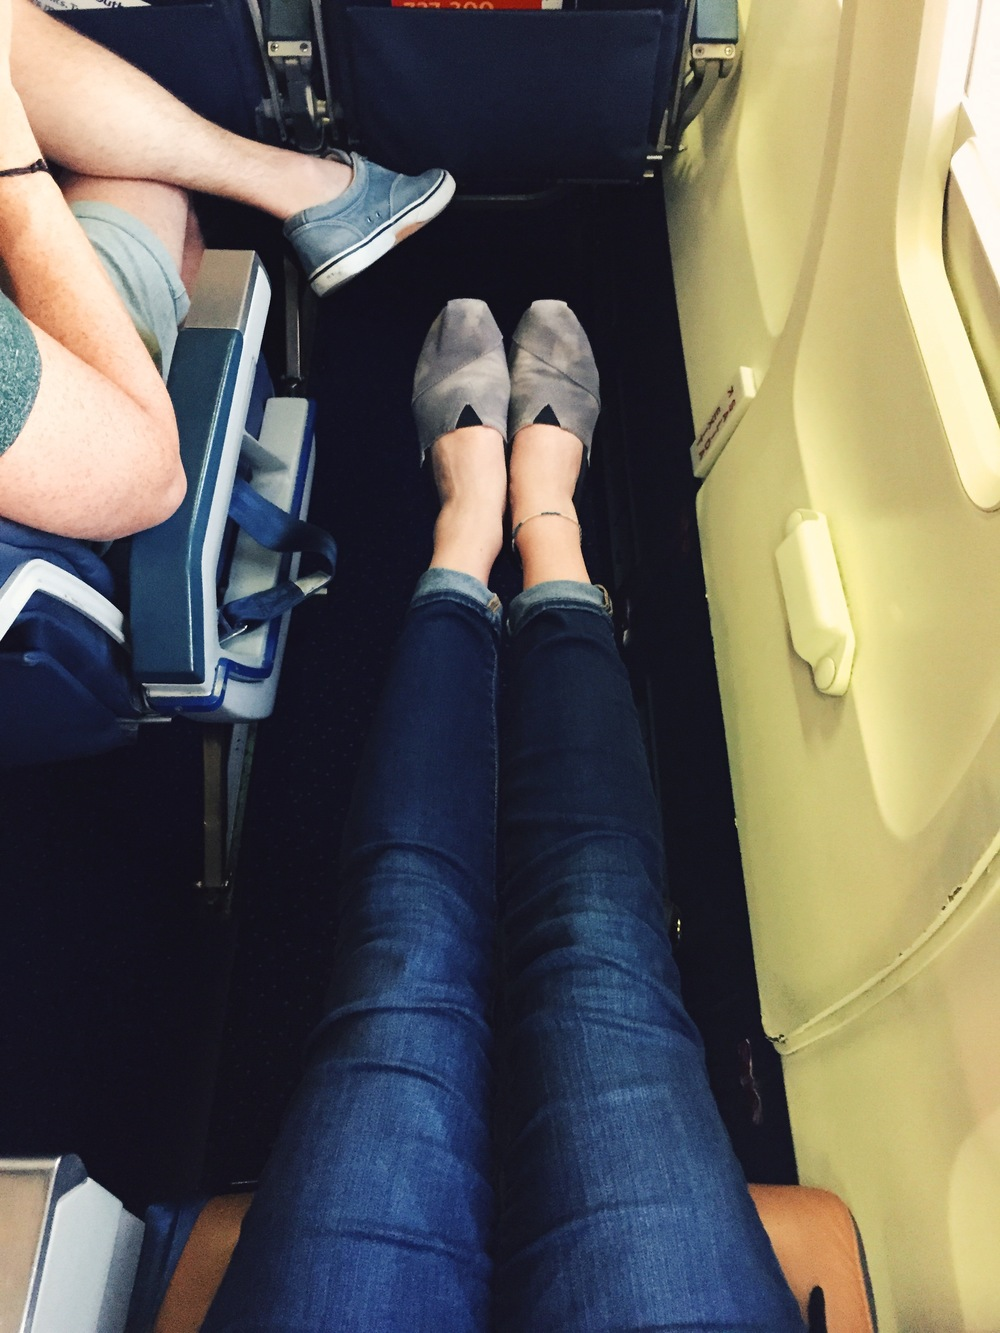 Had to share this: I scored the legroom jackpot on the flight back home!